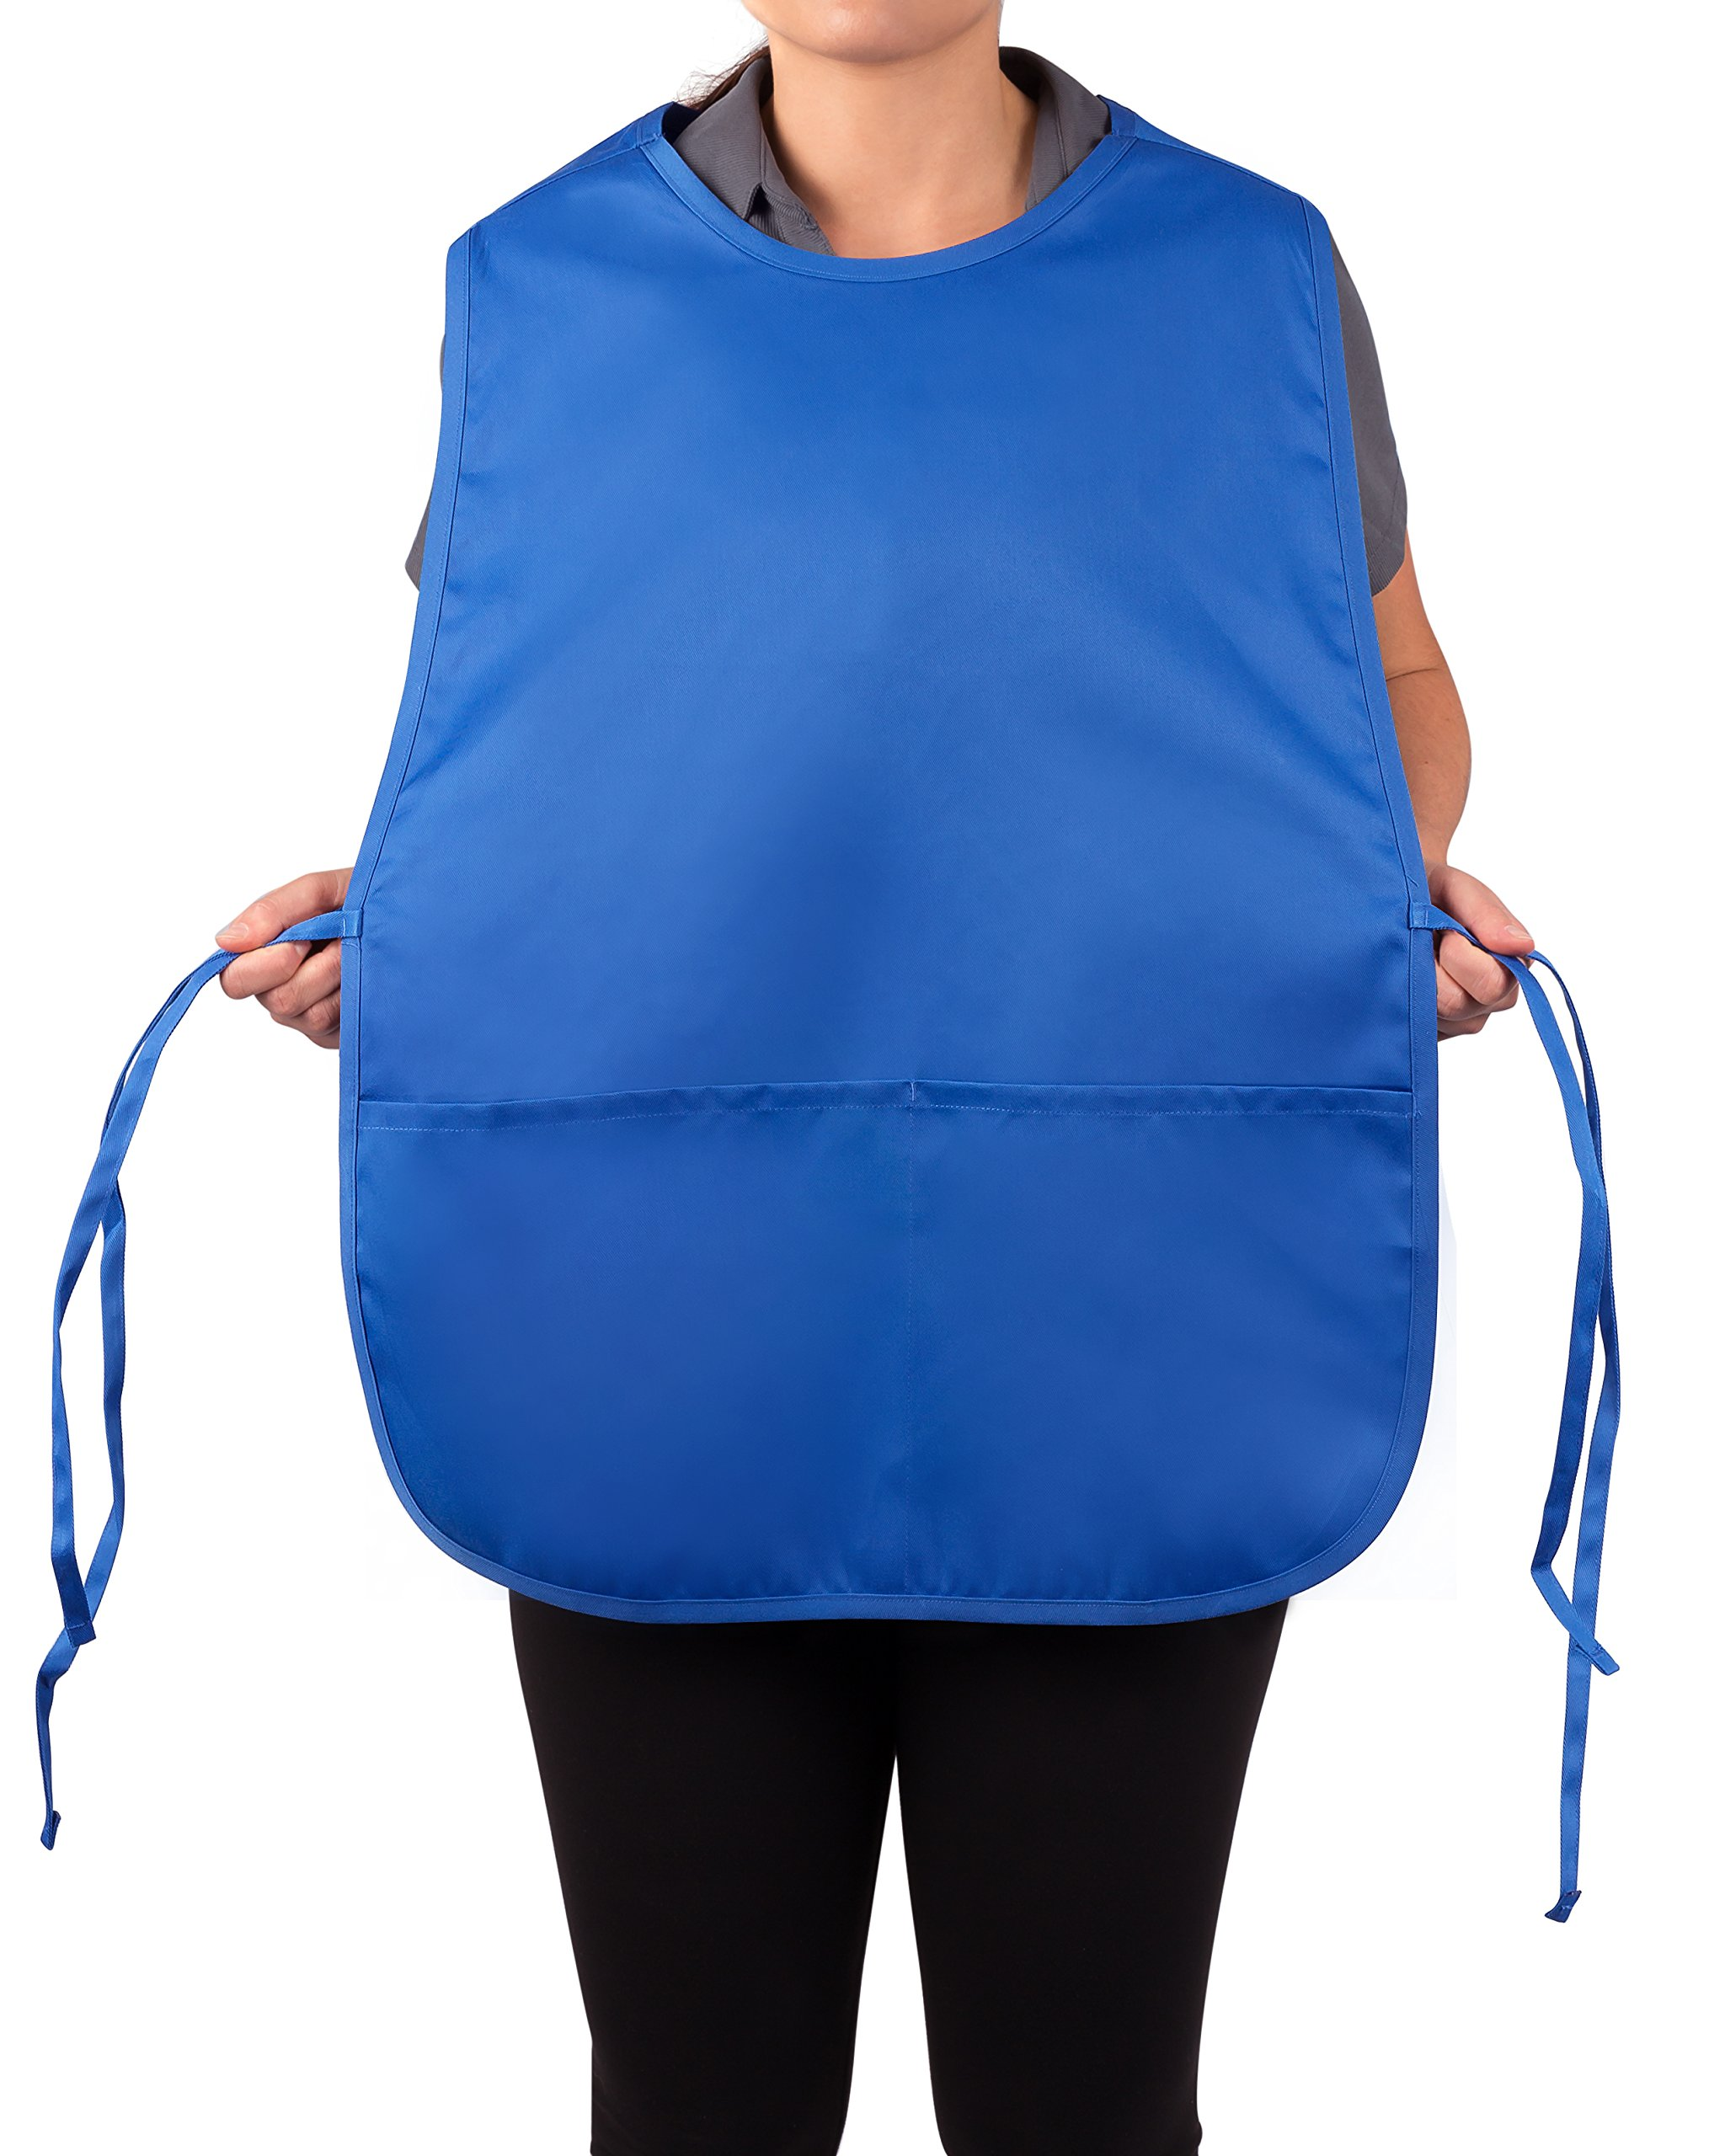 Royal Blue Cobbler Apron, Pack of 36 by KNG (Image #6)